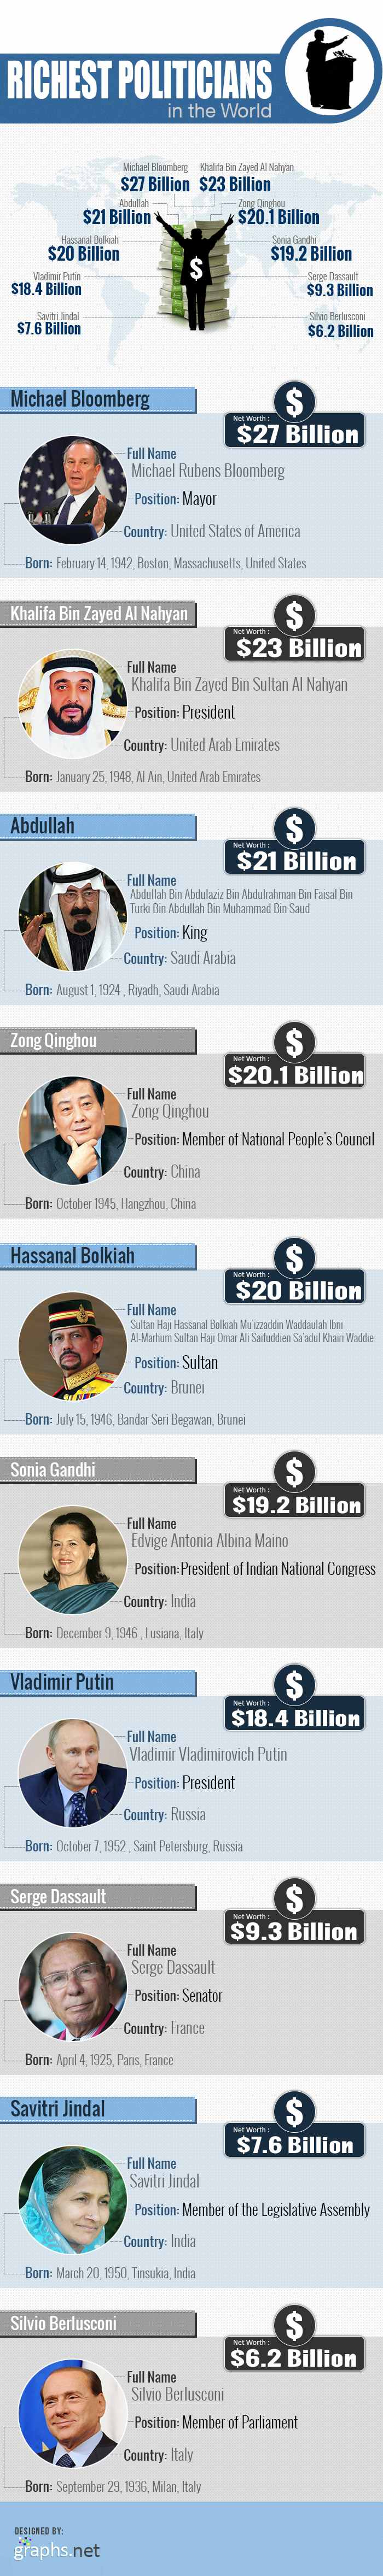 Richest Politicians In The World